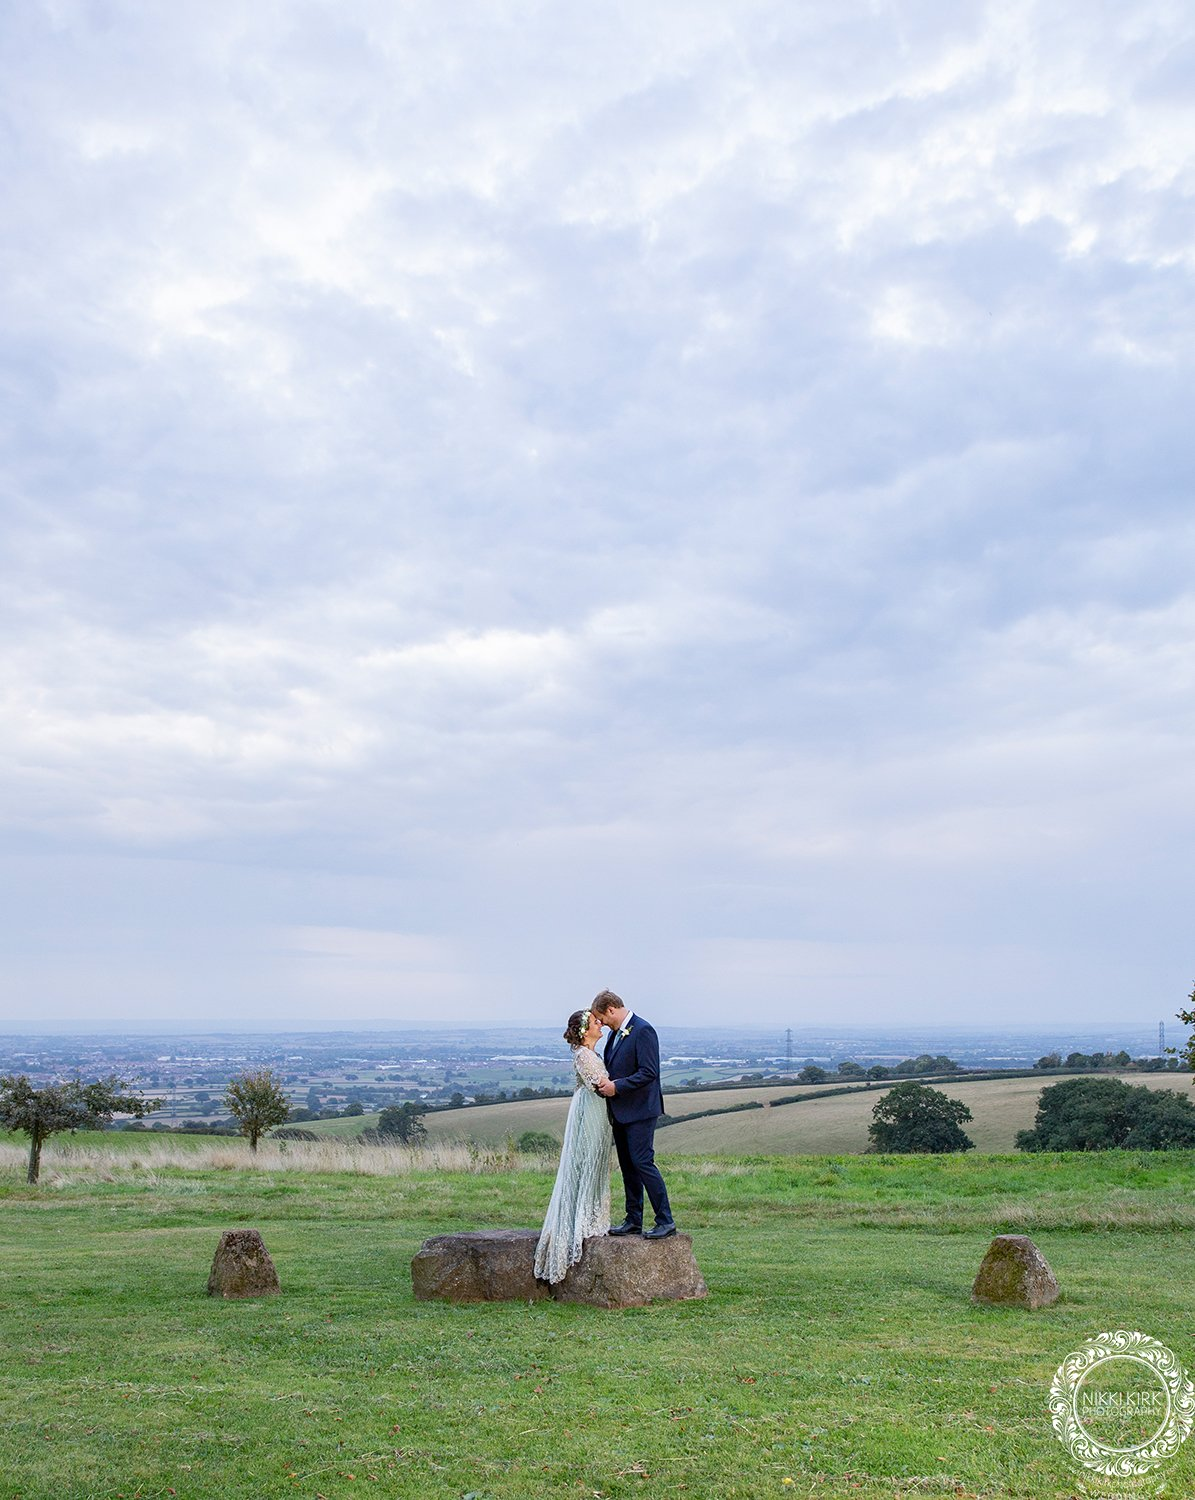 Nikki-Kirk-wedding-photography-Huntstile-Organic-Farm-Somerset